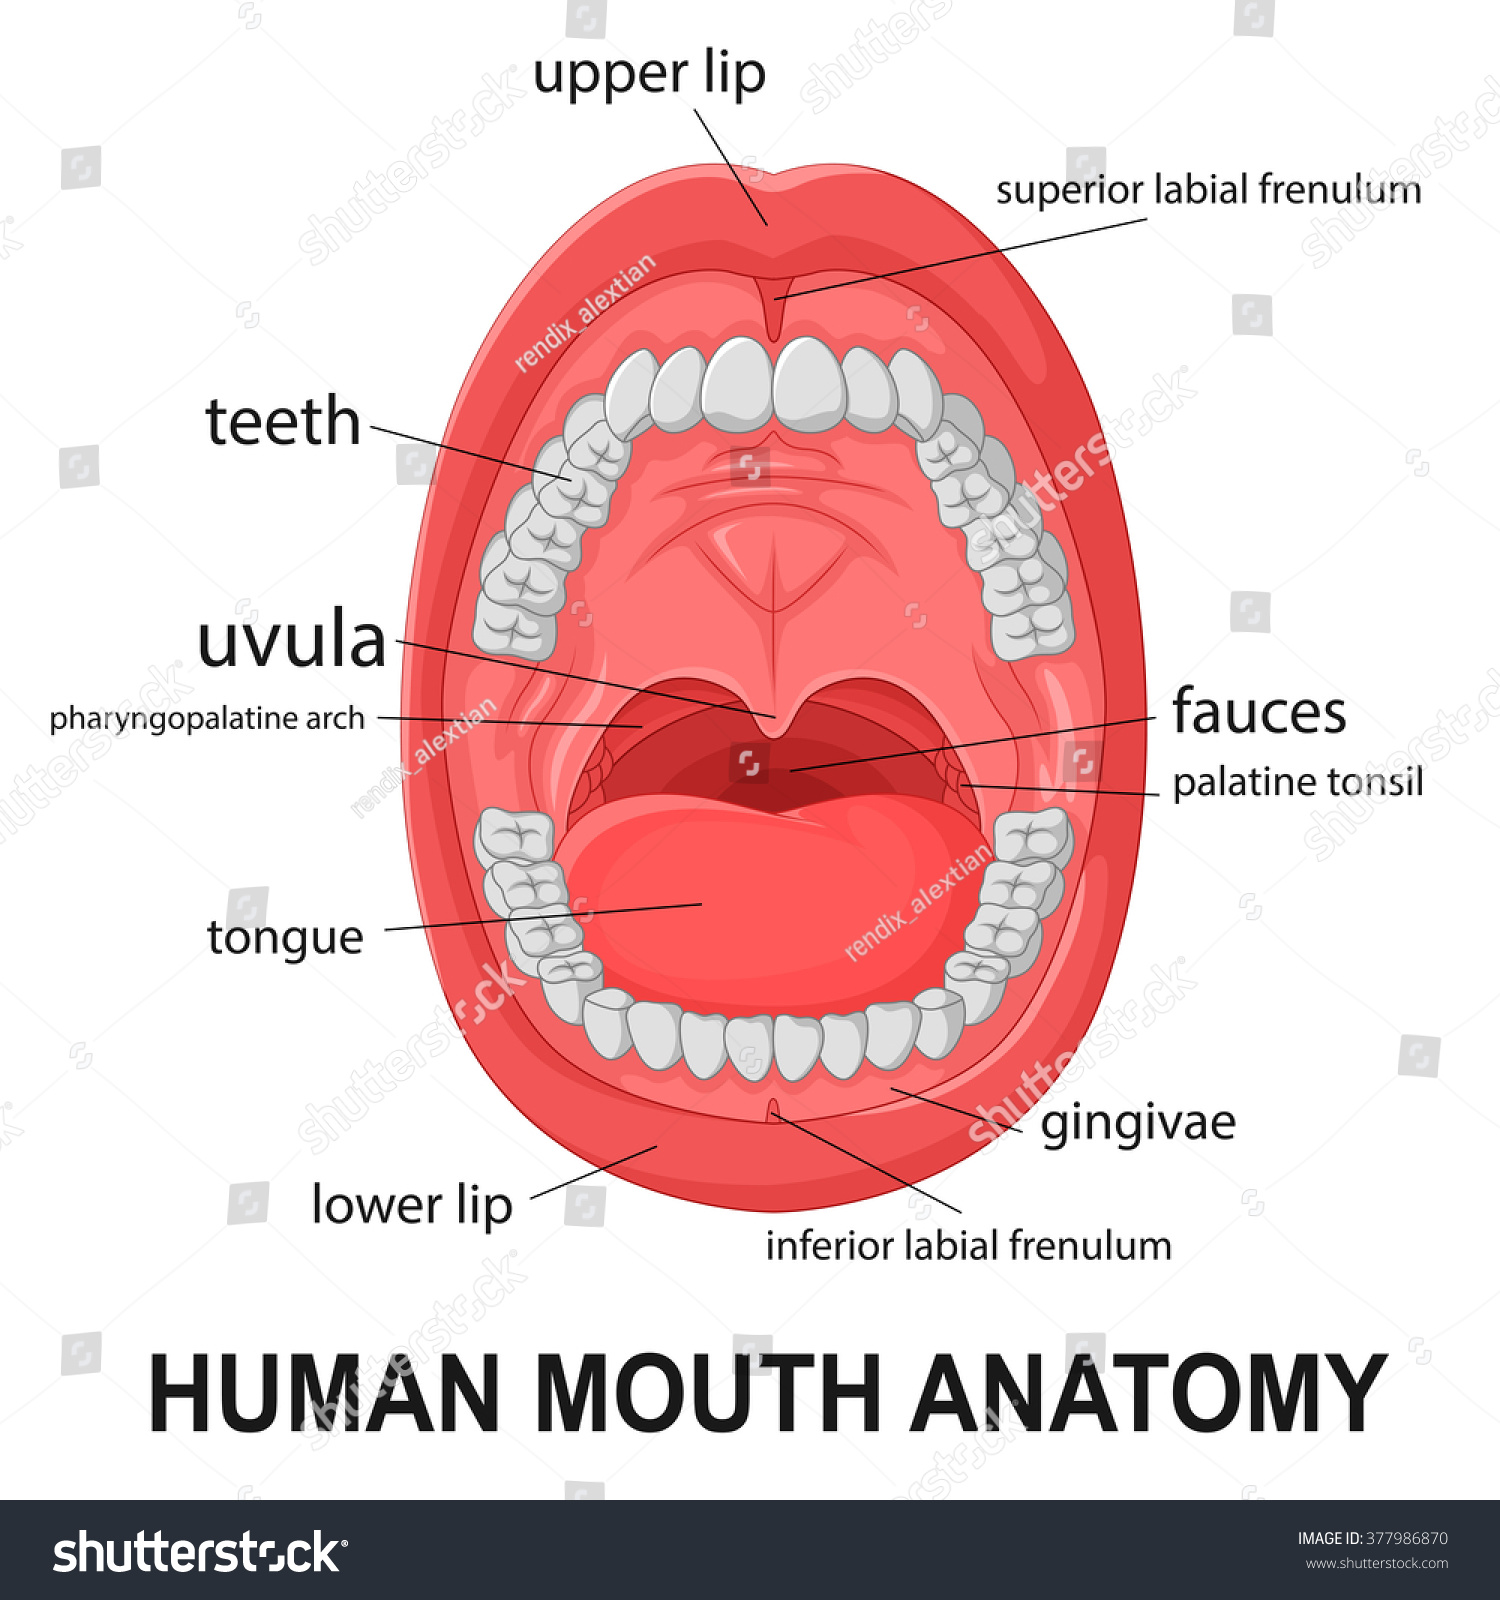 Human mouth anatomy open mouth explaining stock for Floor of mouth anatomy